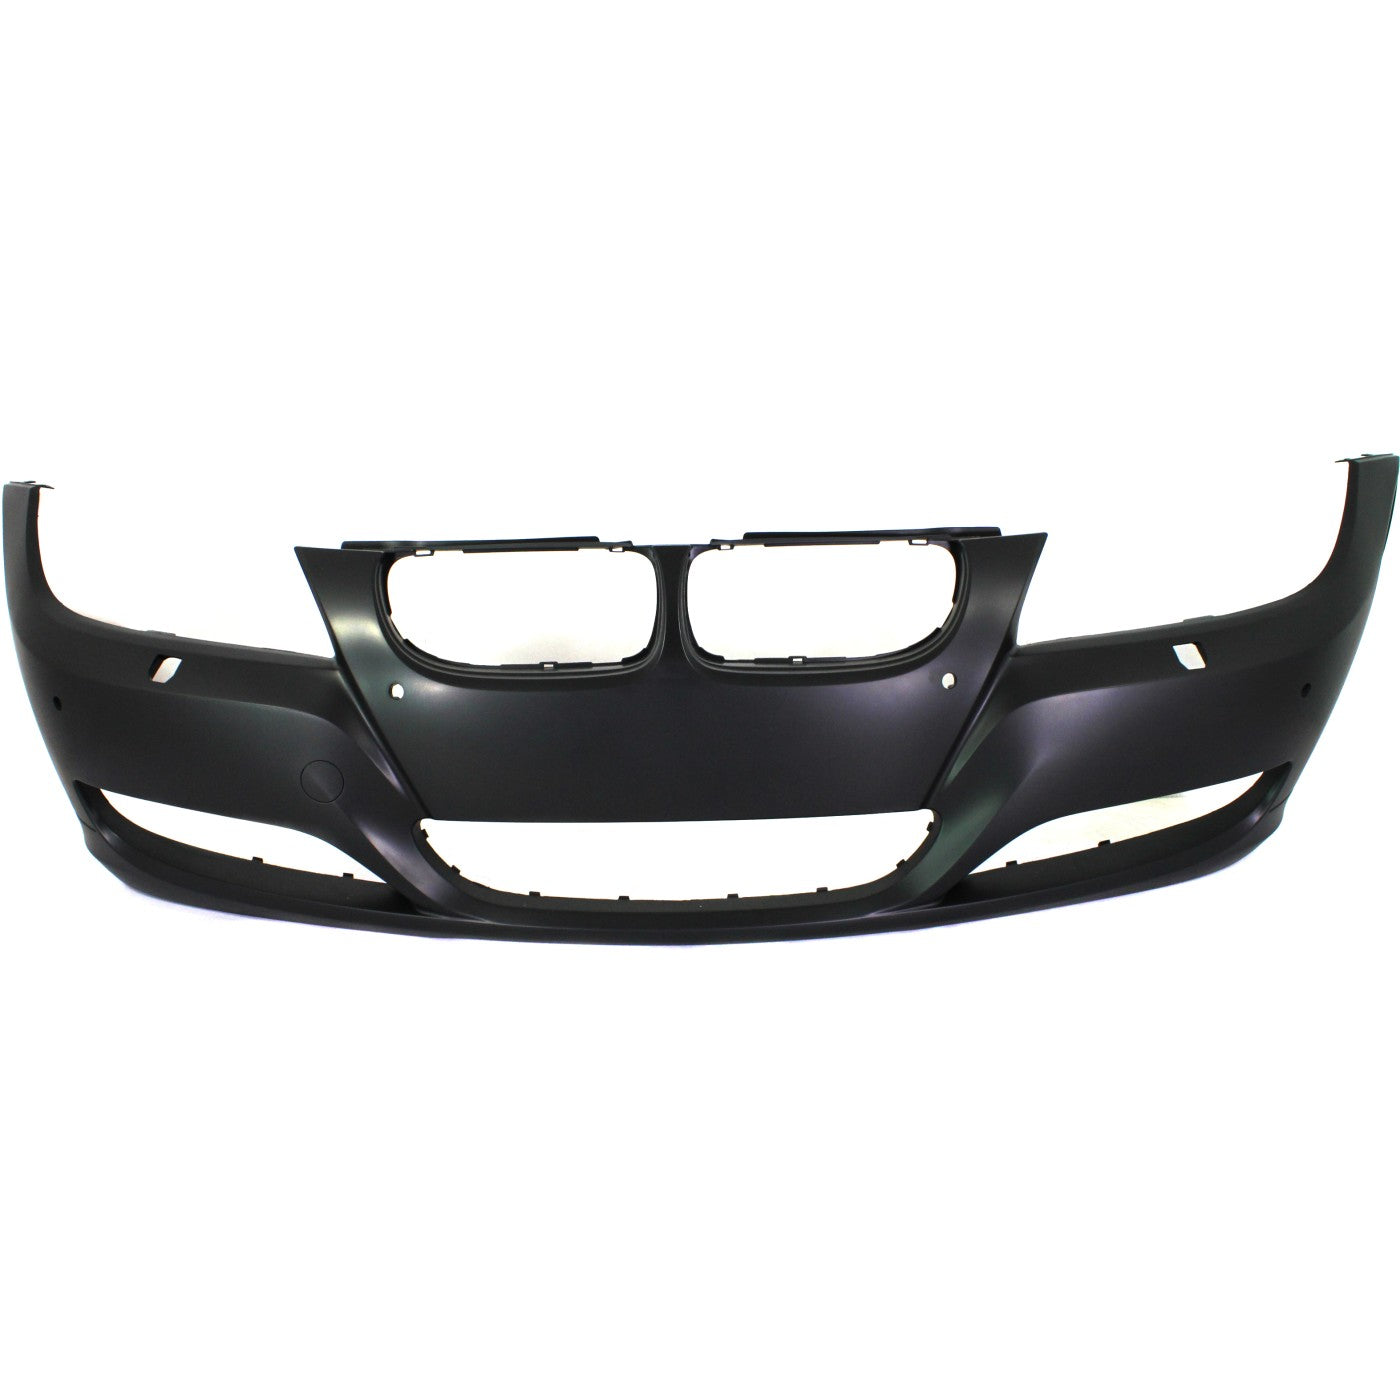 2009-2011 BMW 3-Series (W/ Sensor Holes and W/ HL Washer Holes) Front Bumper